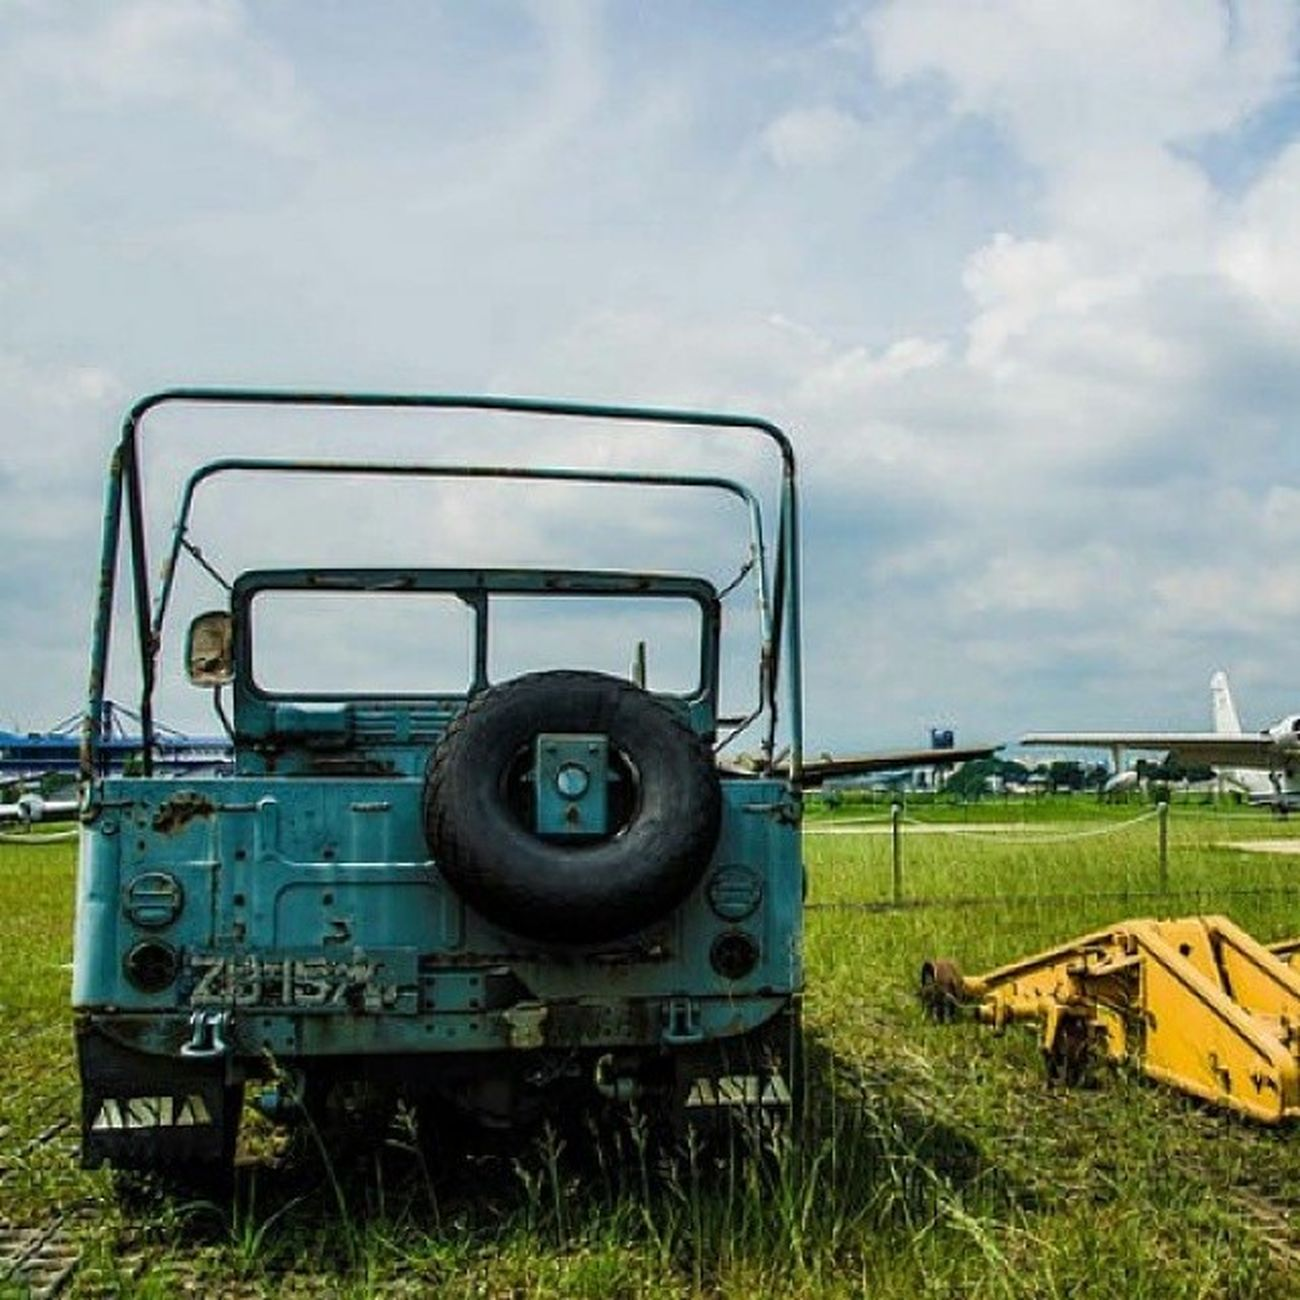 Old Rusty Scenery Airforce Tudm Museum Jeep Vehicle